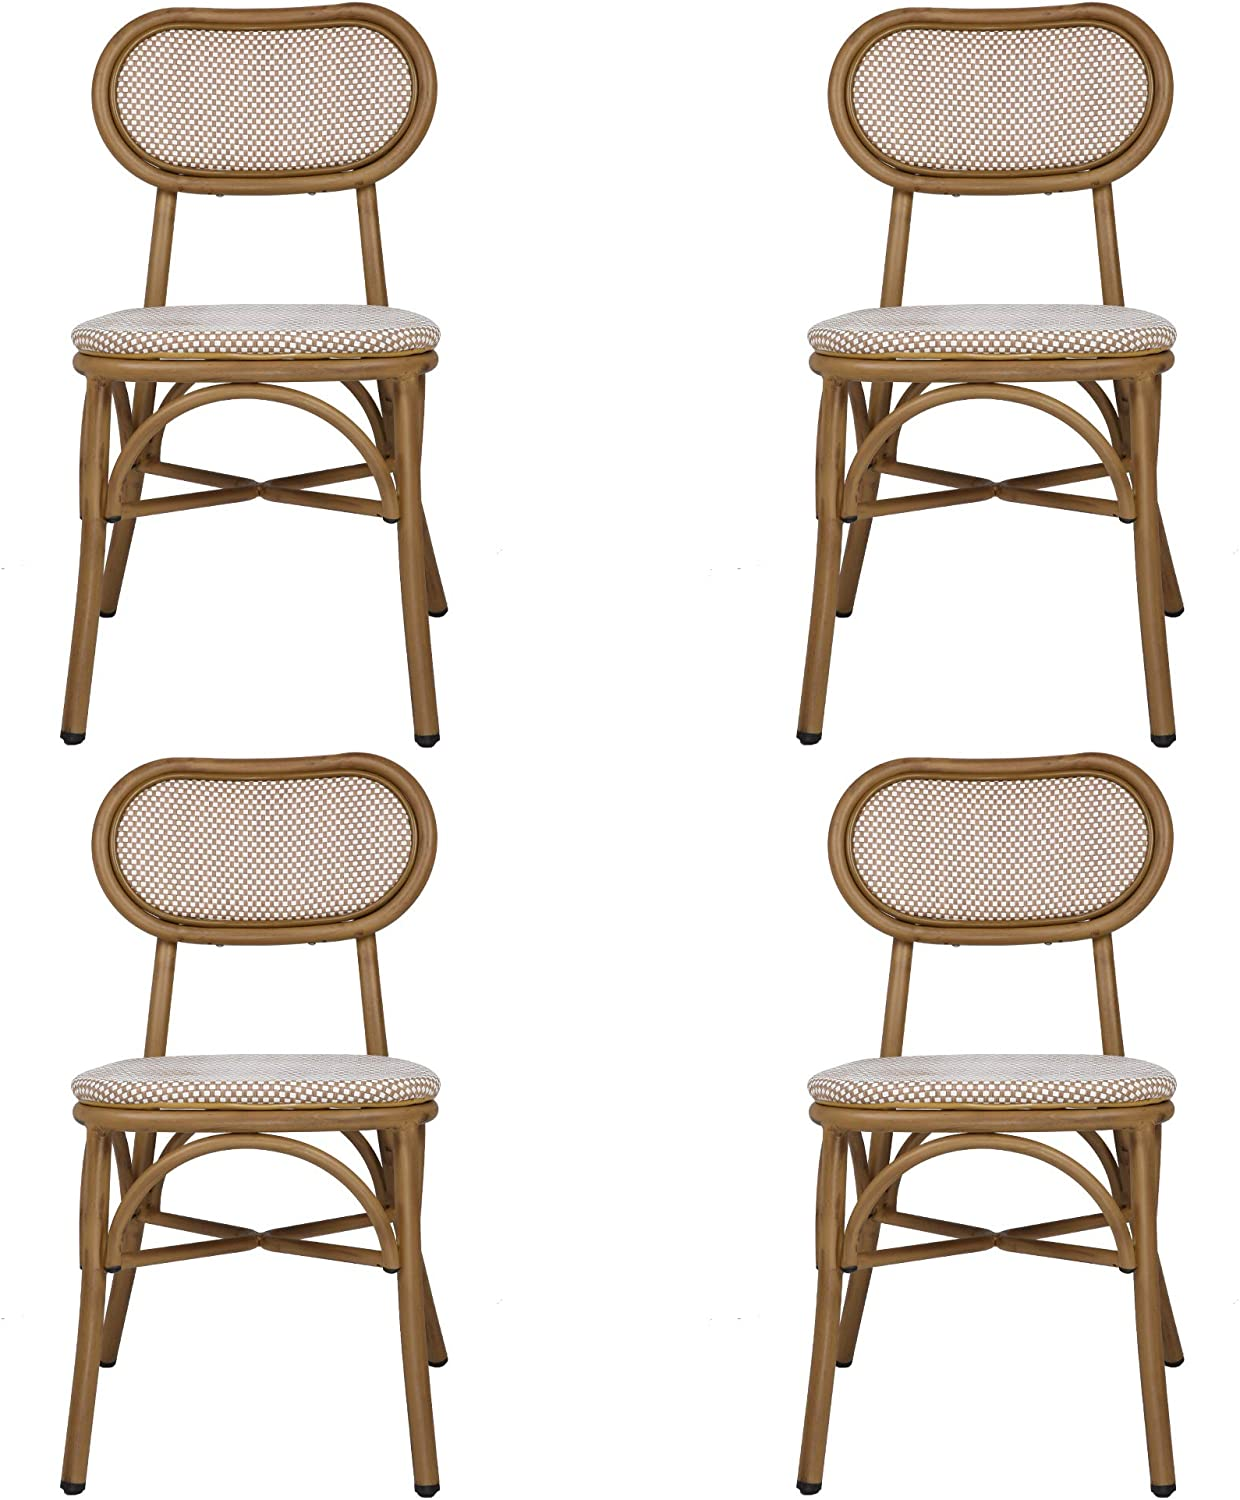 Rattan Dining Chairs Set Max 46% OFF of 4 with Ba Indoor New arrival Use Outdoor Armless